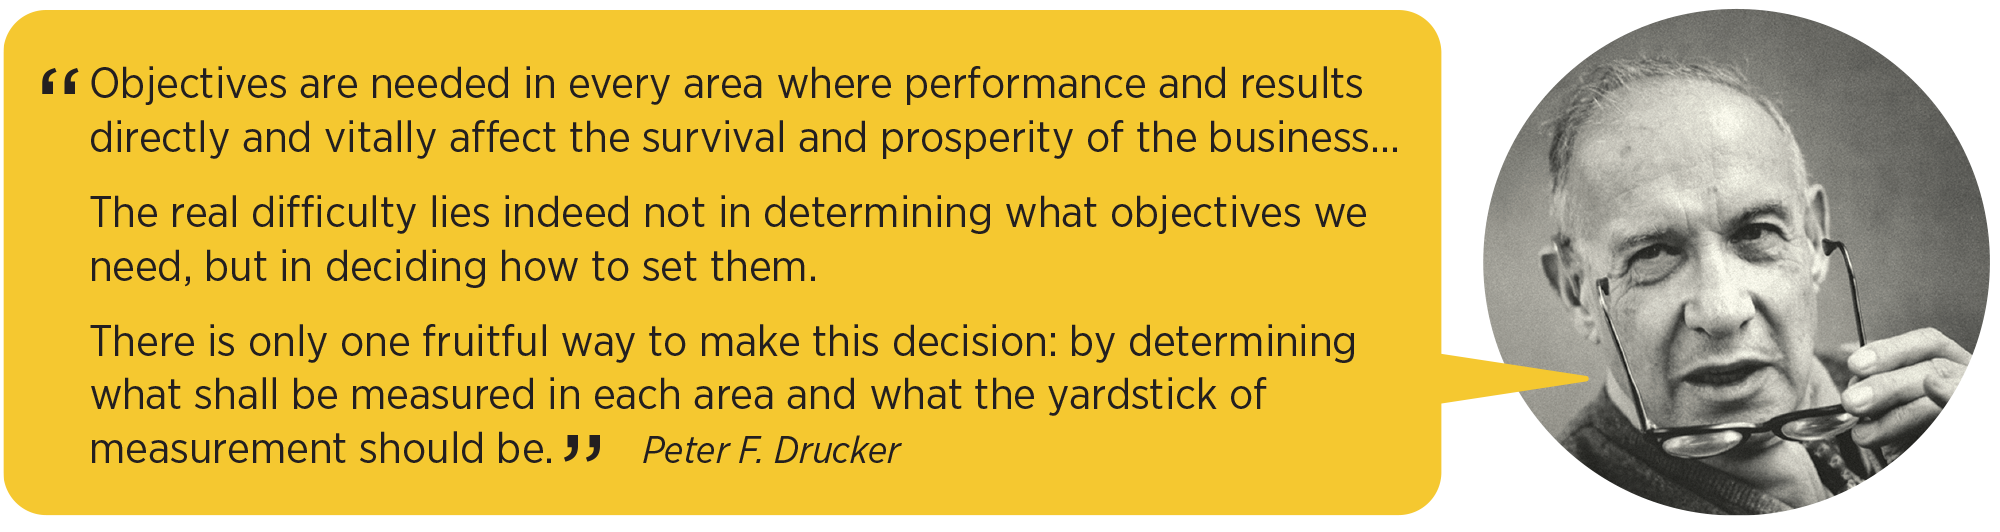 Objectives are needed in every area where performance and results directly and vitally affect the survival and prosperity of the business... Peter F. Drucker